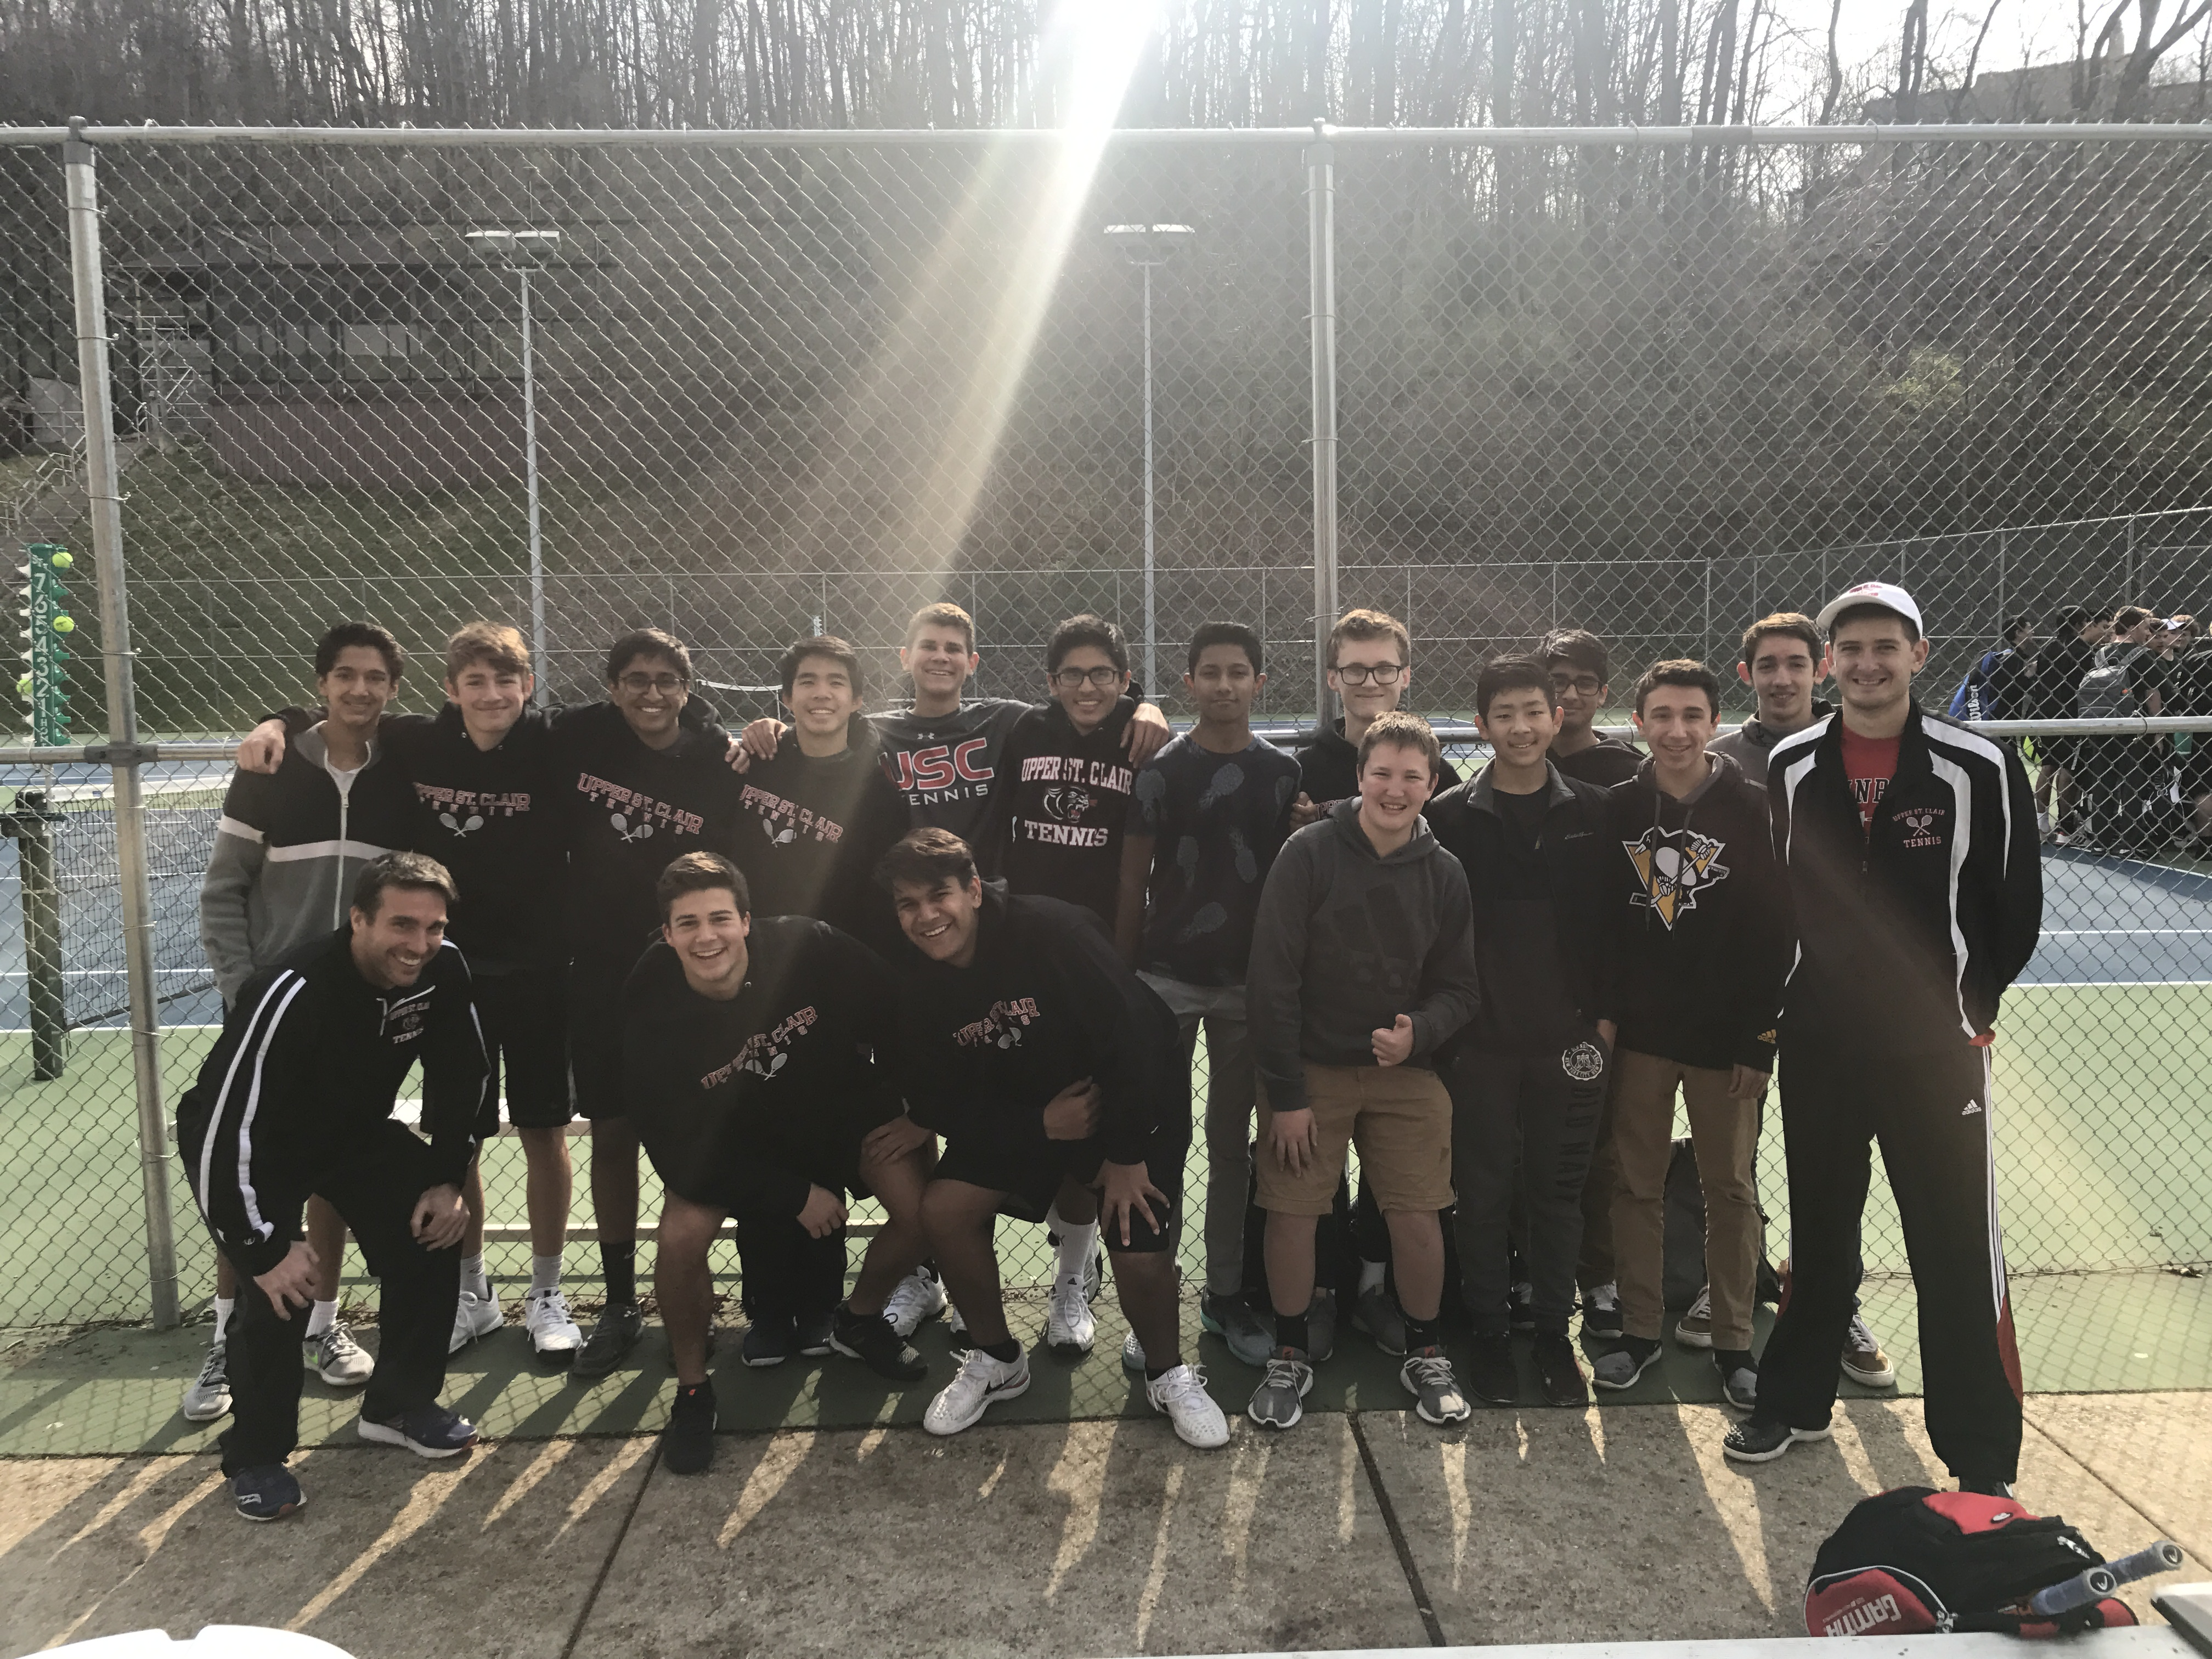 USC Boys Tennis Advances With Win In WPIAL Tournament